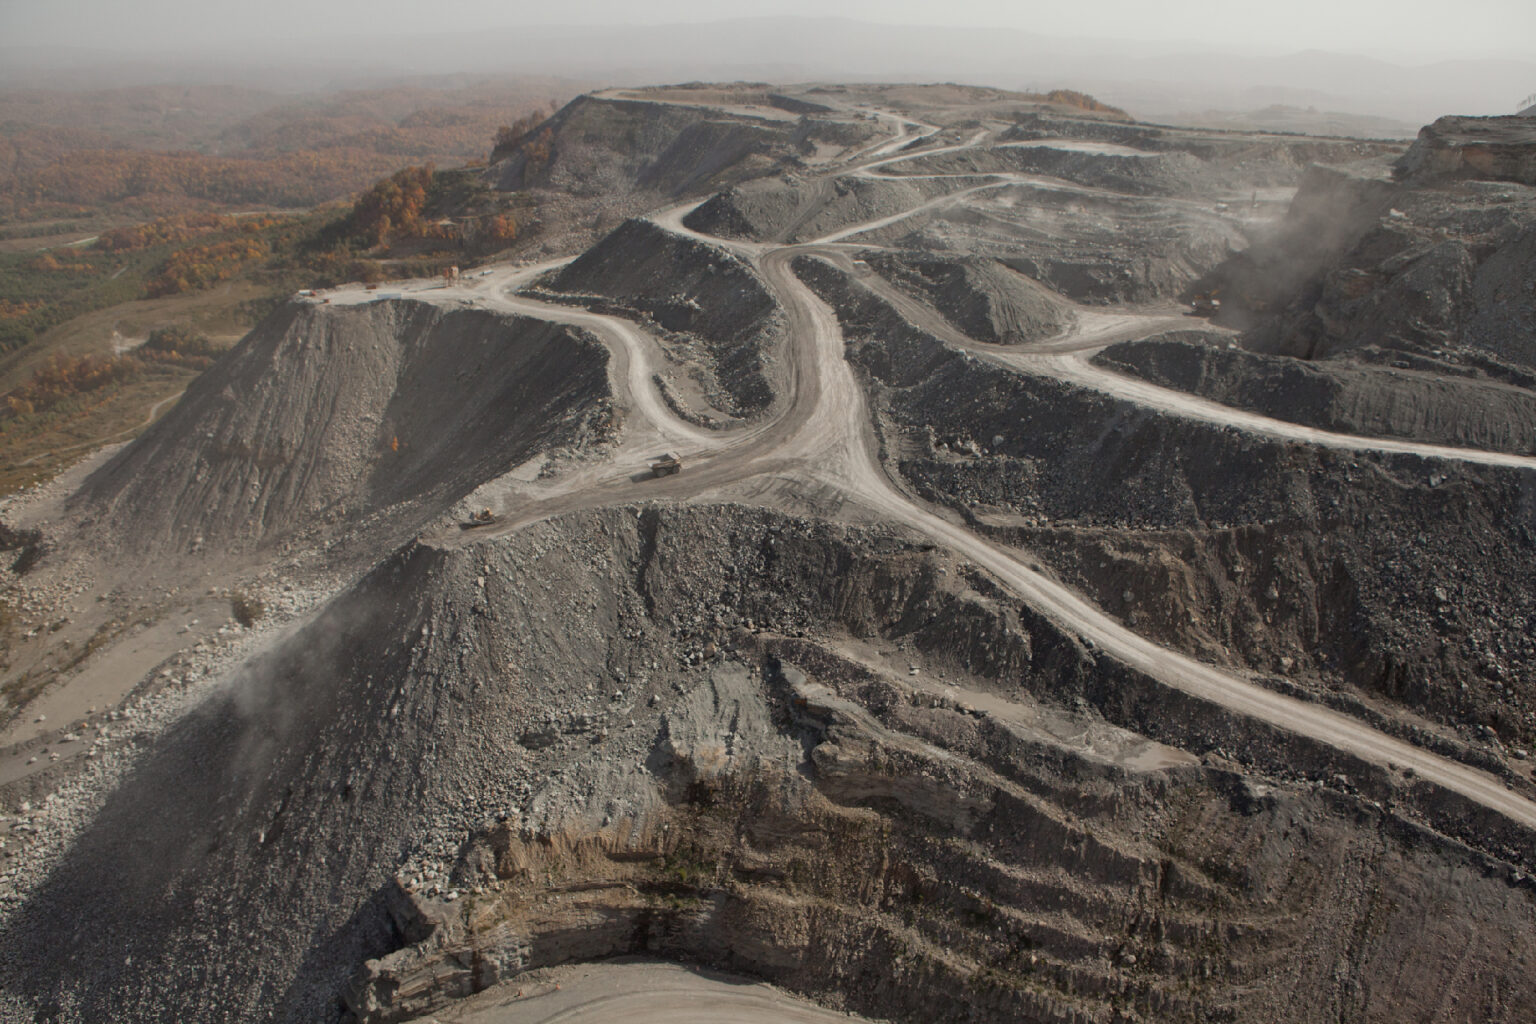 Mountaintop removal mining, Wise County, Virginia, 2012